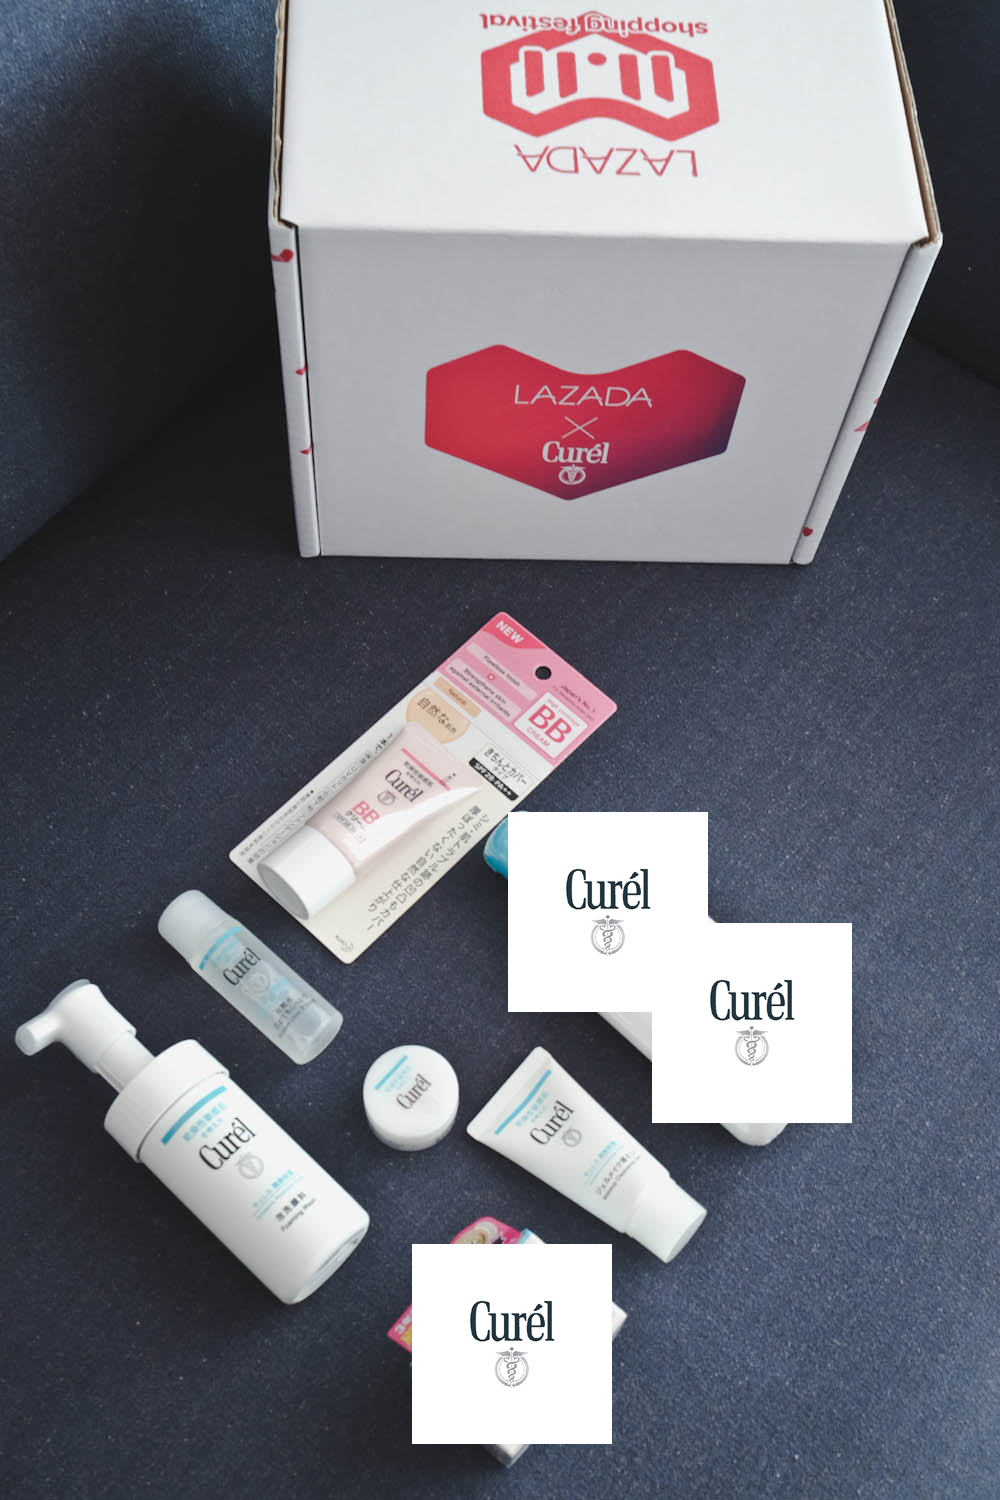 Lazada 11.11 Surprise Box Curel-4 mask